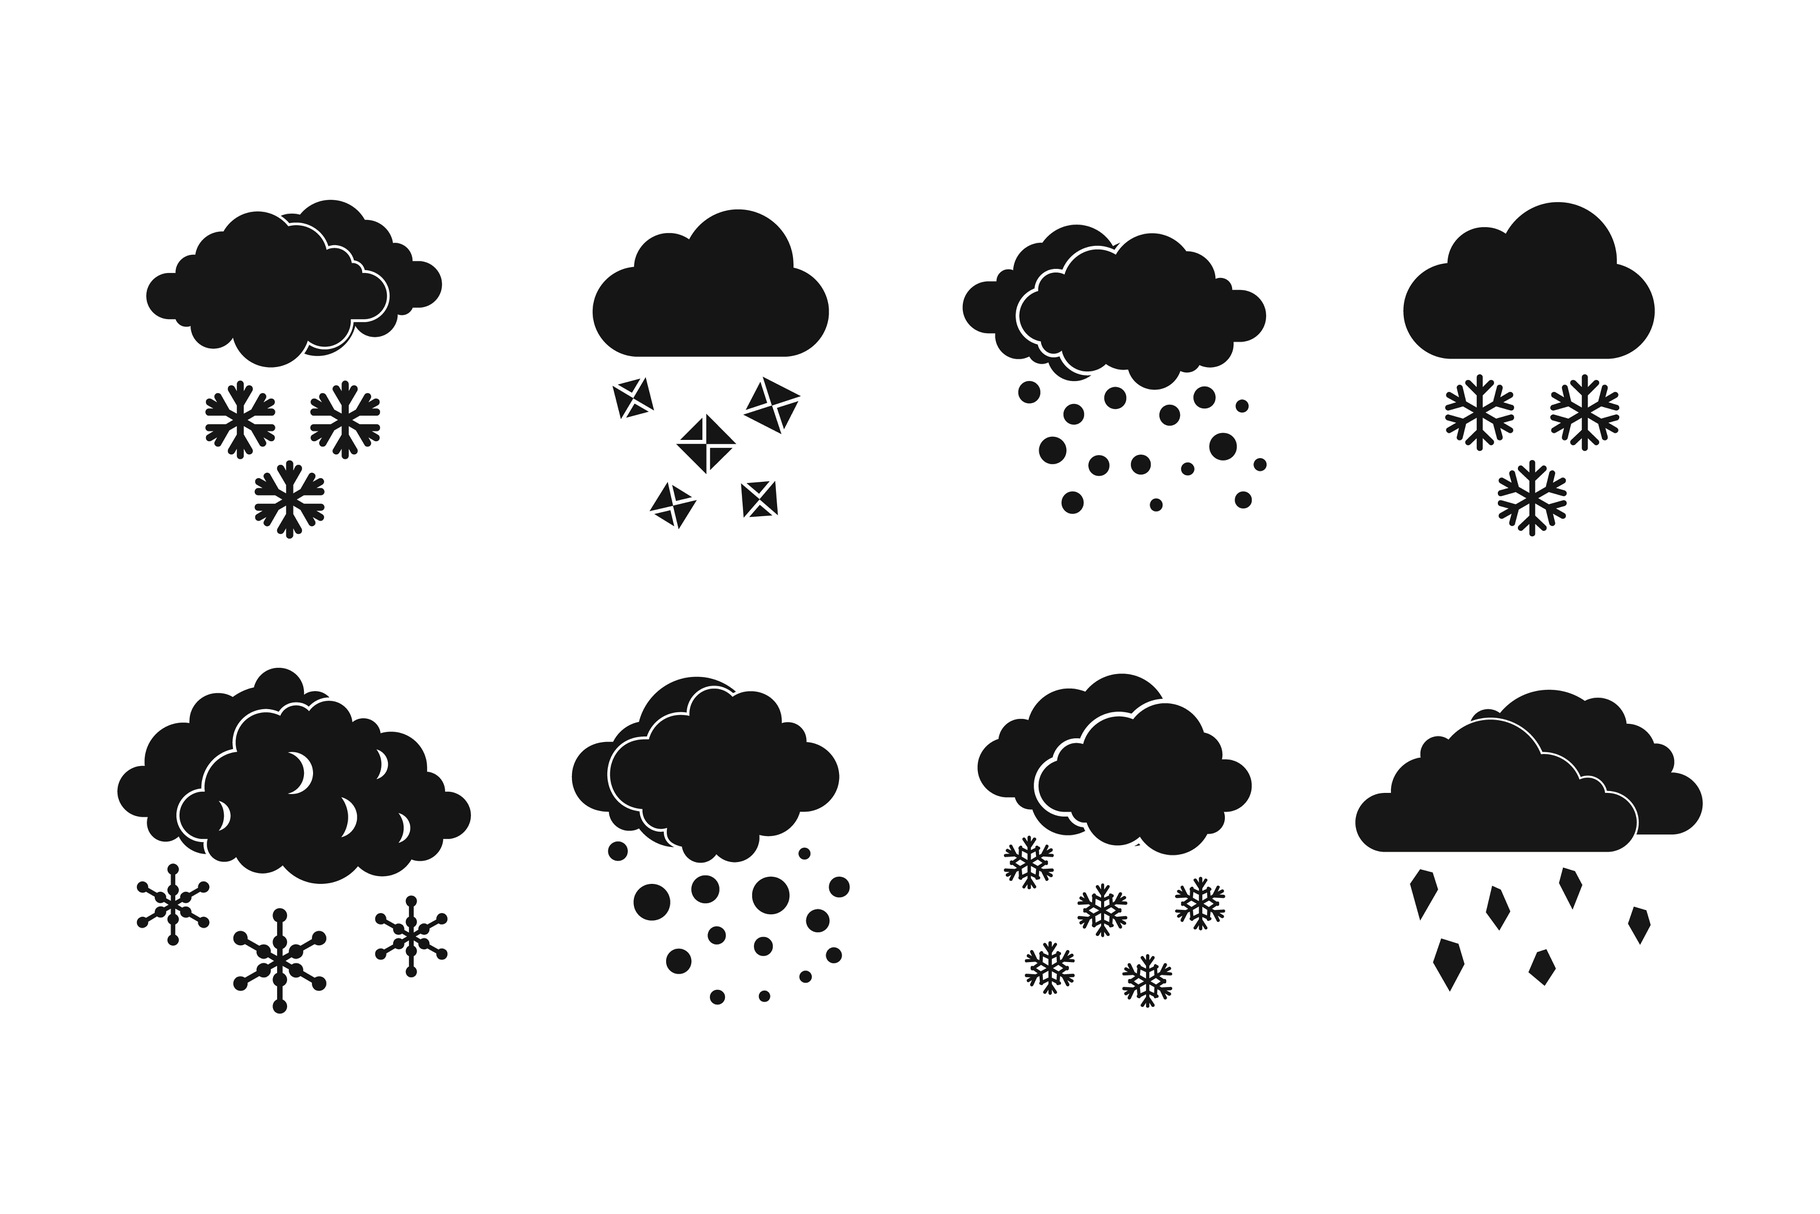 Snow cloud icon set, simple style example image 1